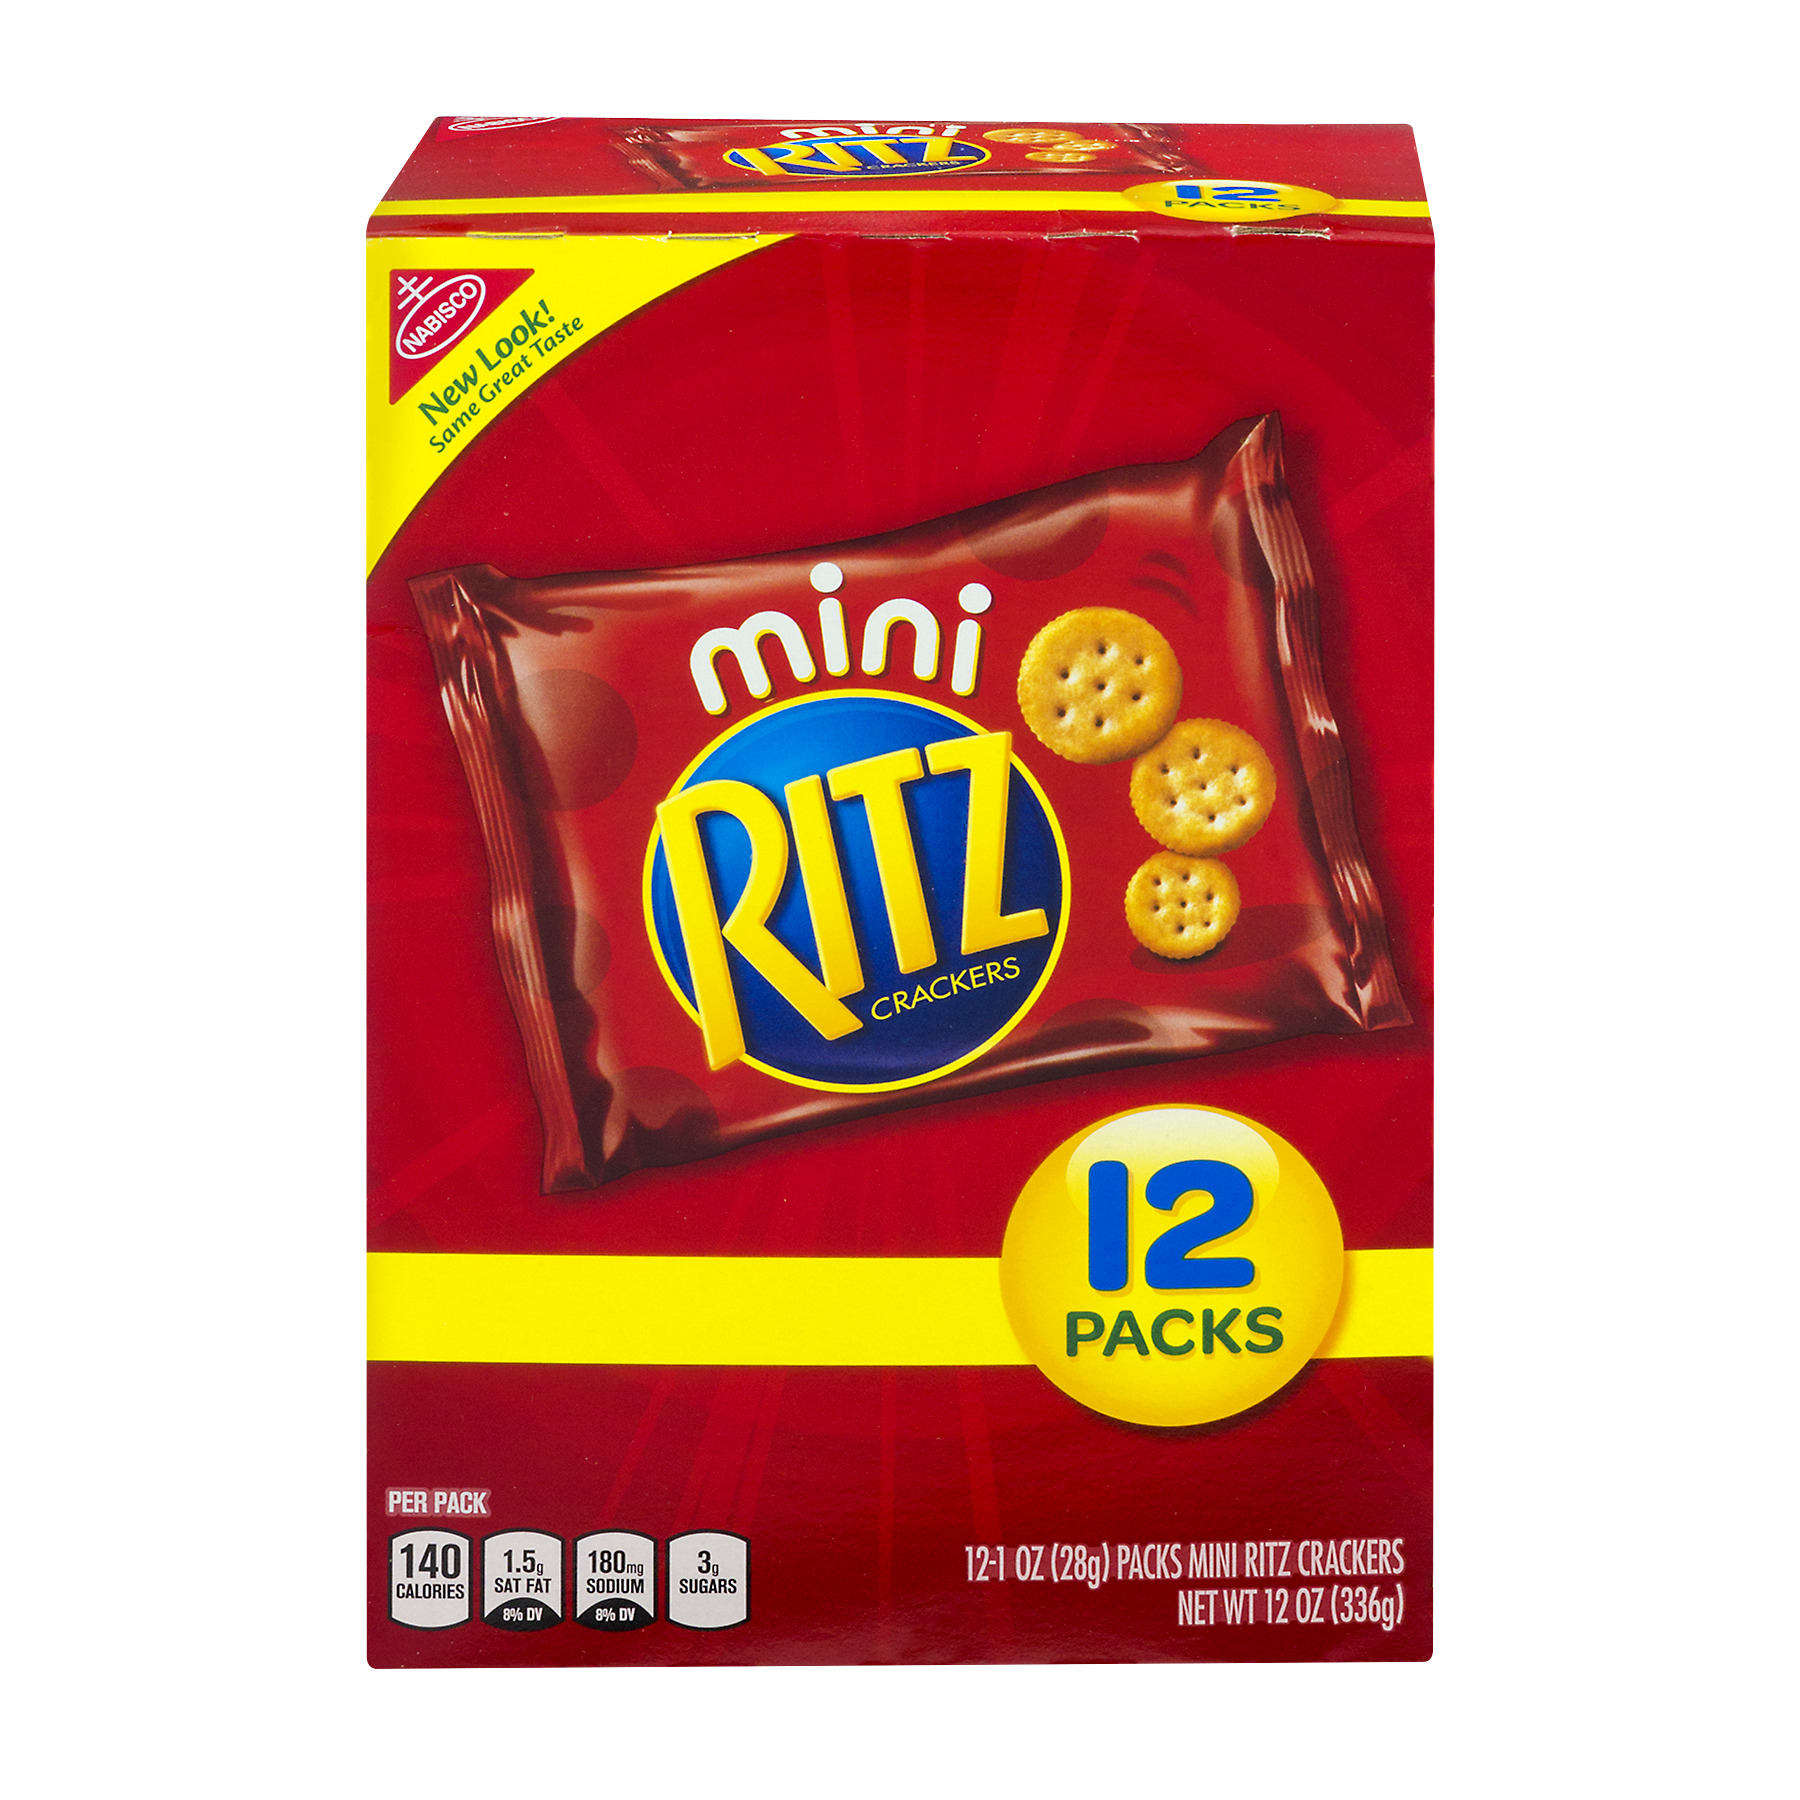 Mini Ritz Crackers - 12 PK, 1.0 OZ